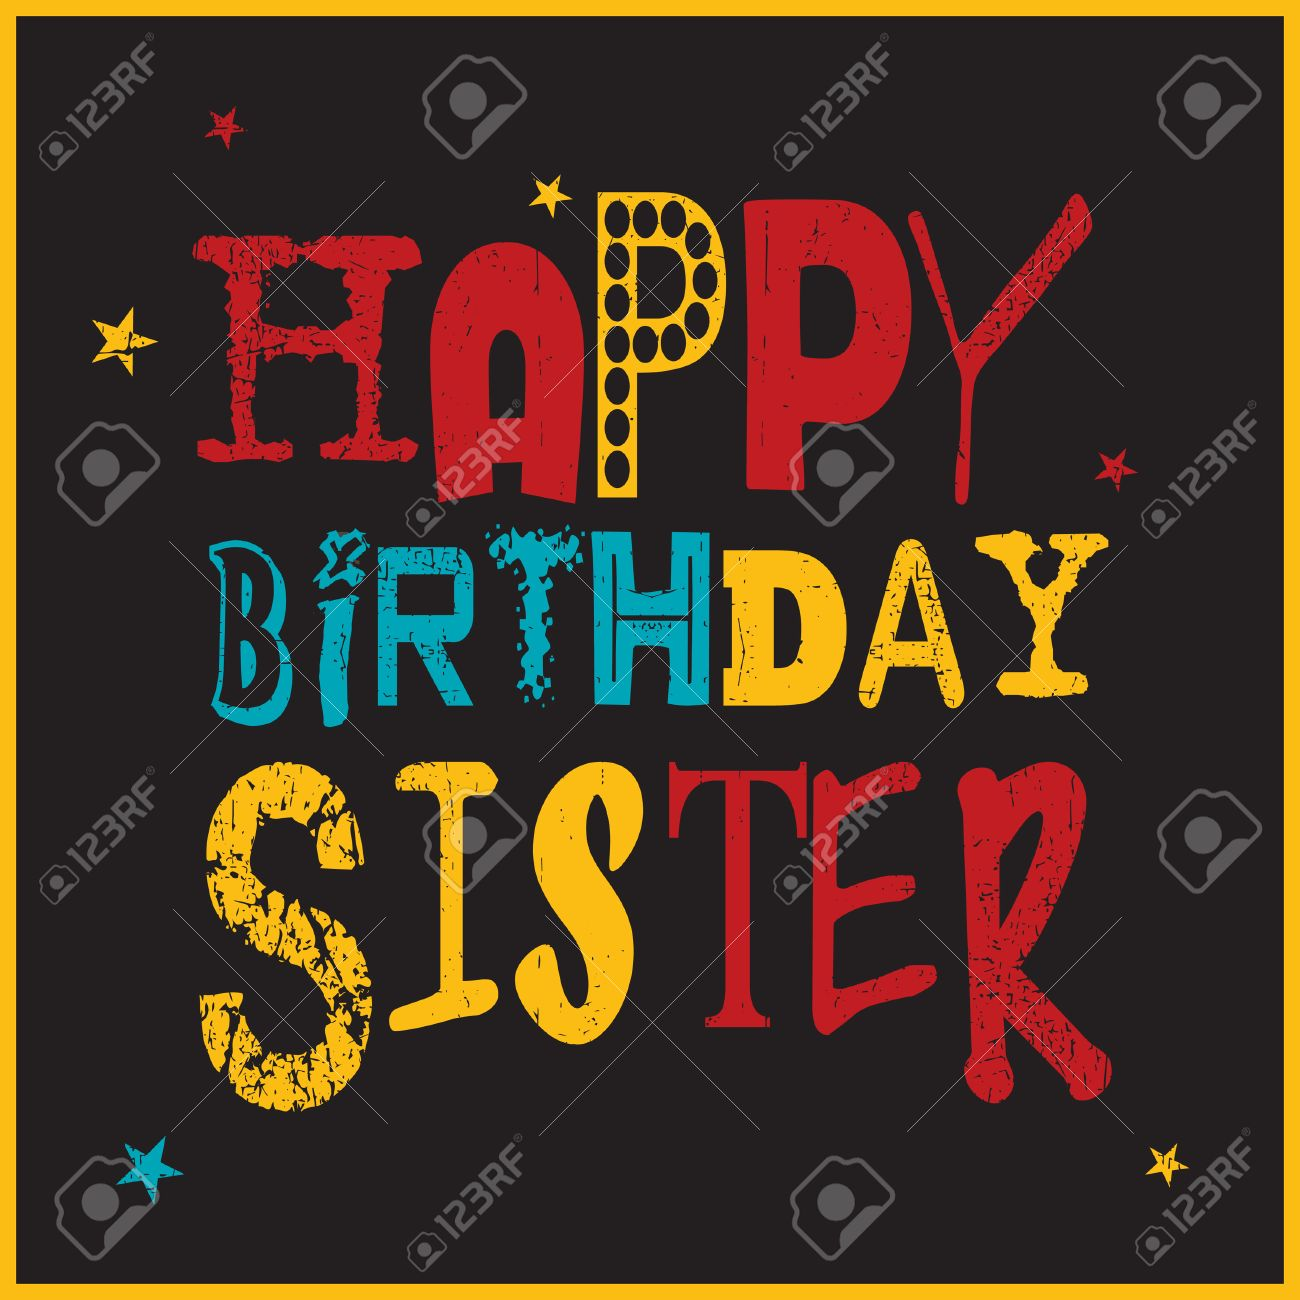 happy birthday sister clipart ; 57012836-retro-happy-birthday-card-happy-birthday-sister-vector-illustration